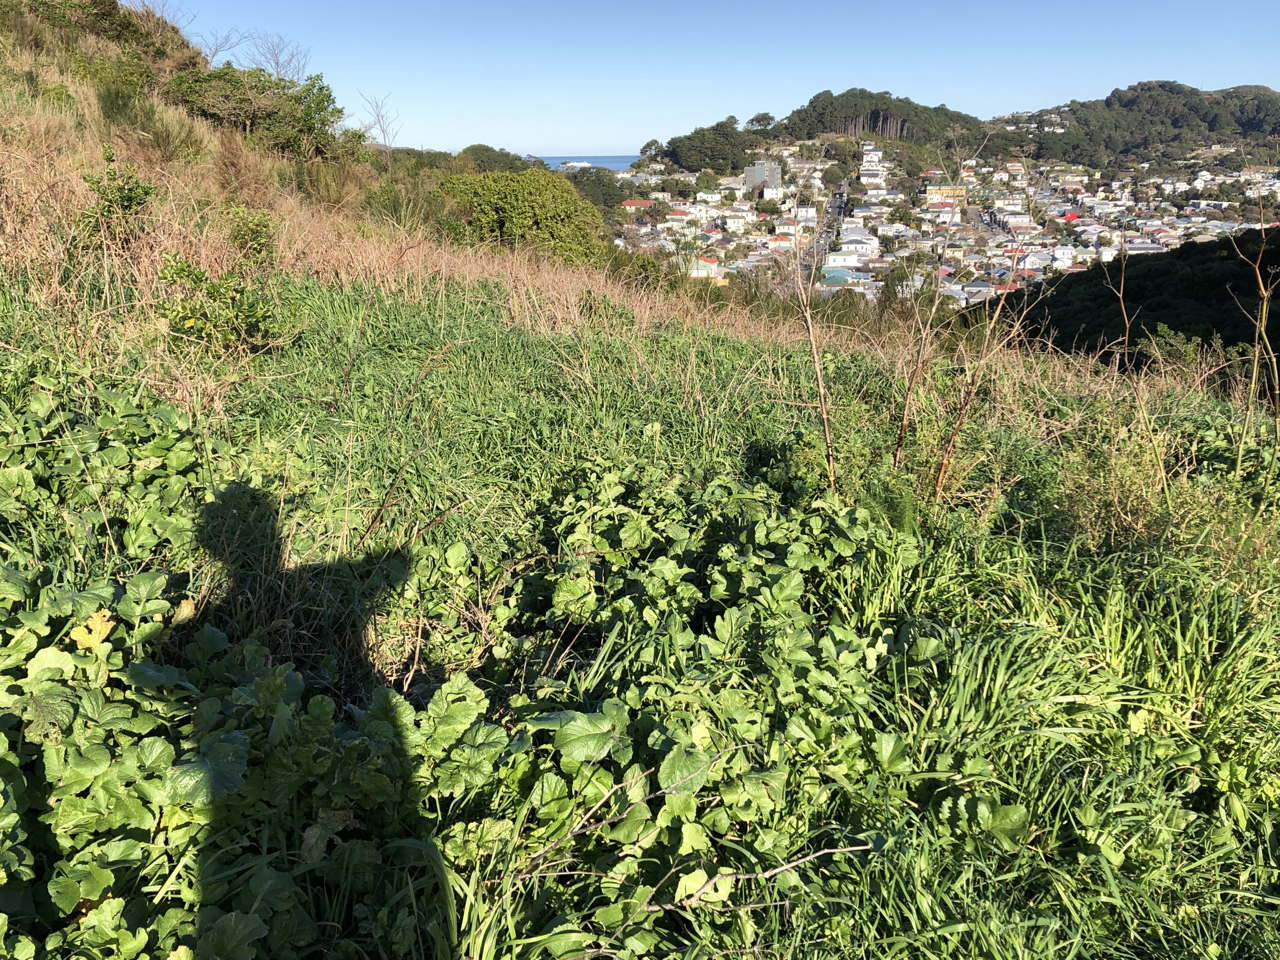 Photo of woman's shadow with elbows raised. Hilly suburb and sea in the background